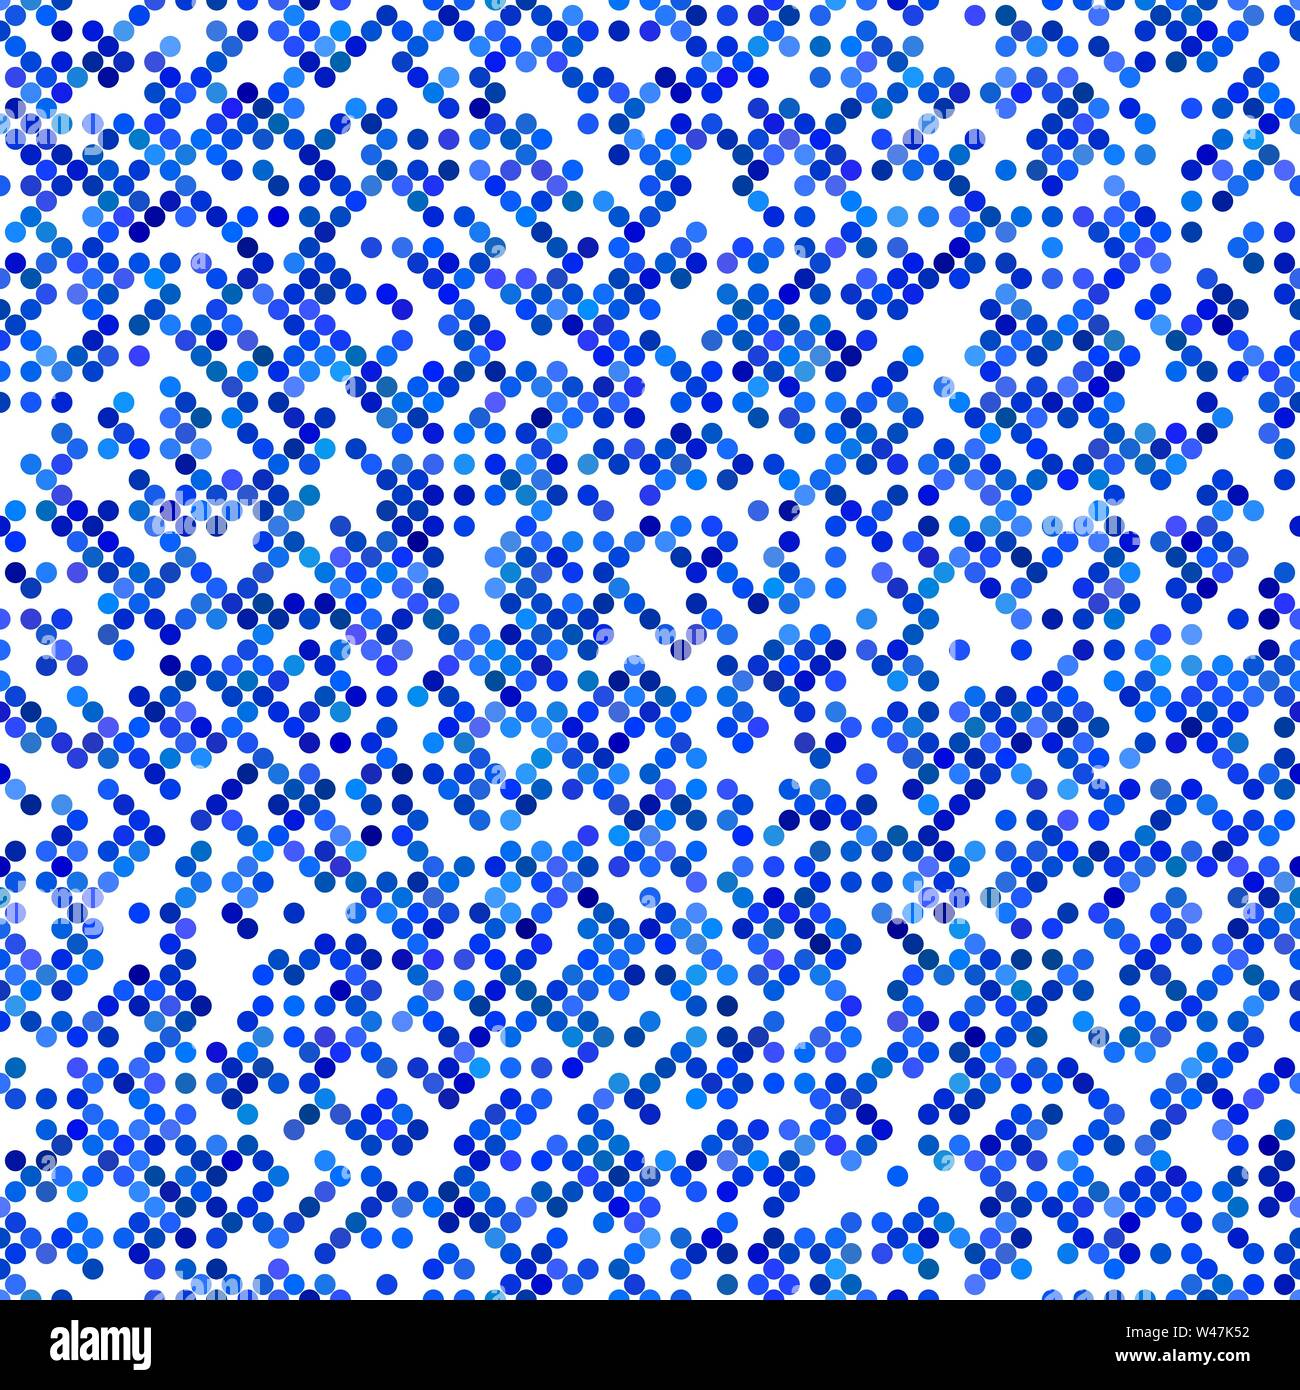 Blue seamless dot pattern background - abstract vector graphic design - Stock Image